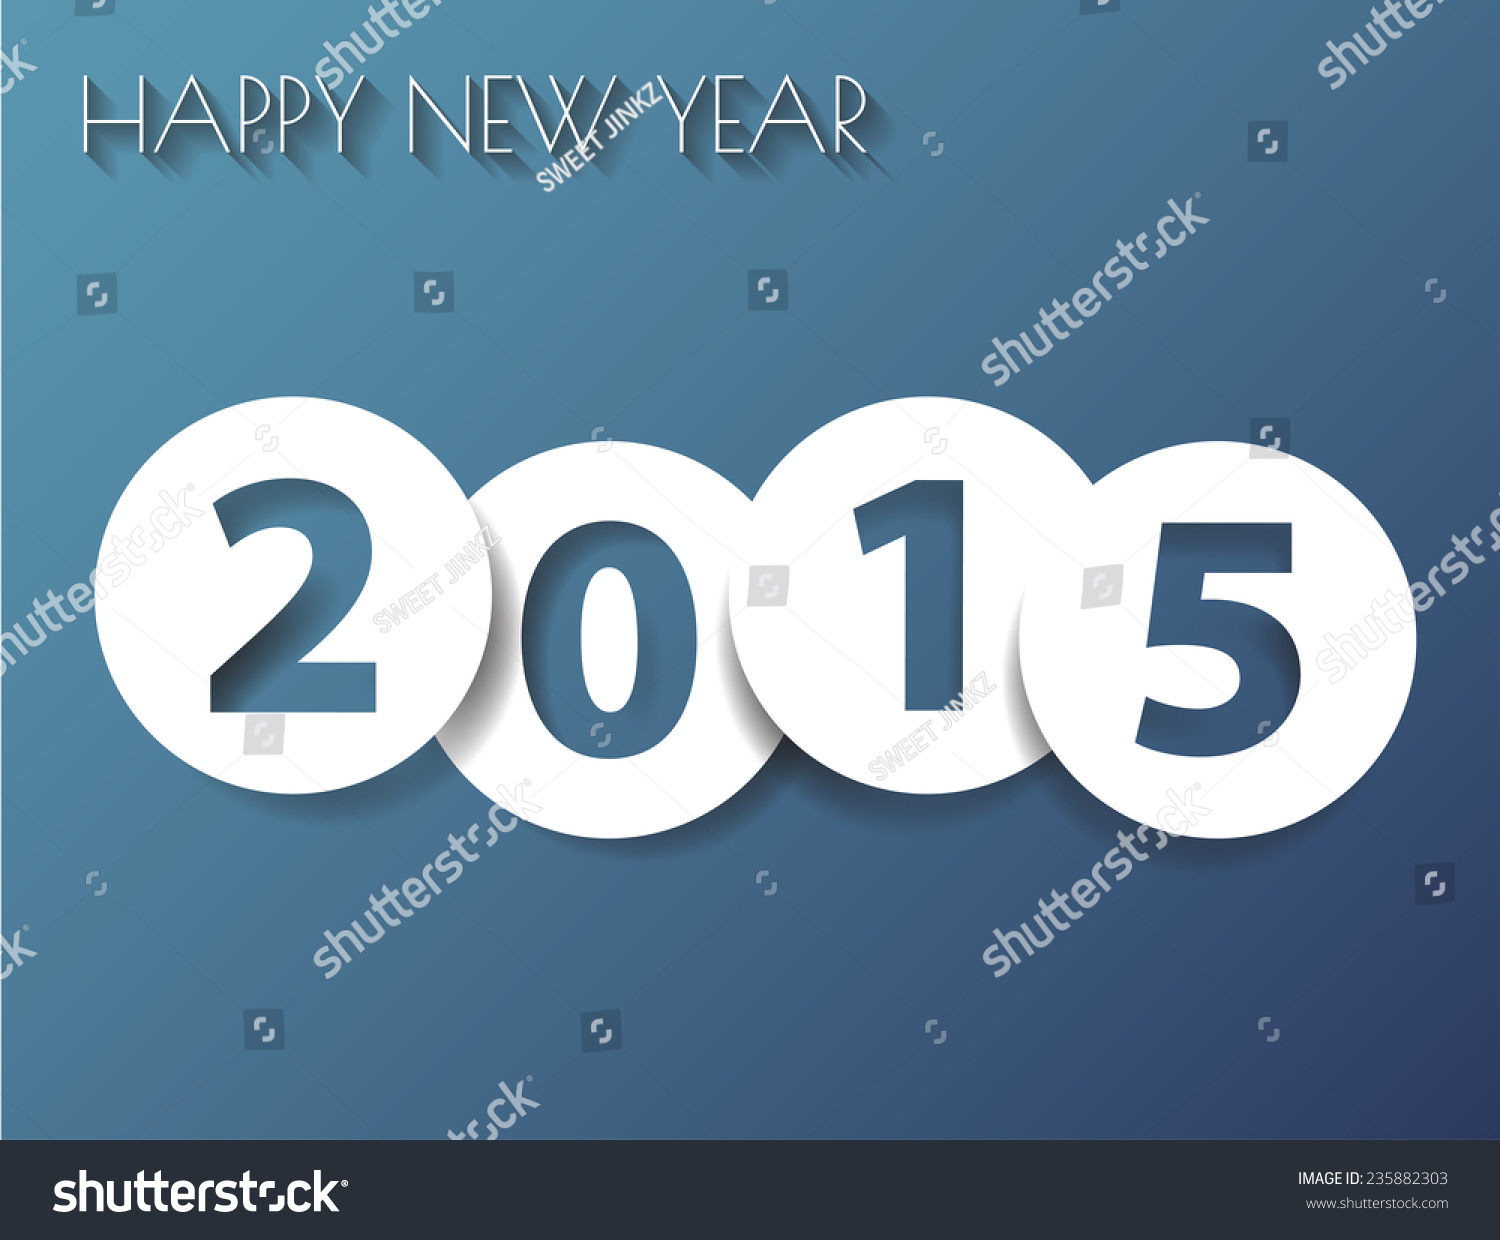 happy new year card 2016 simple stock illustration ez canvas